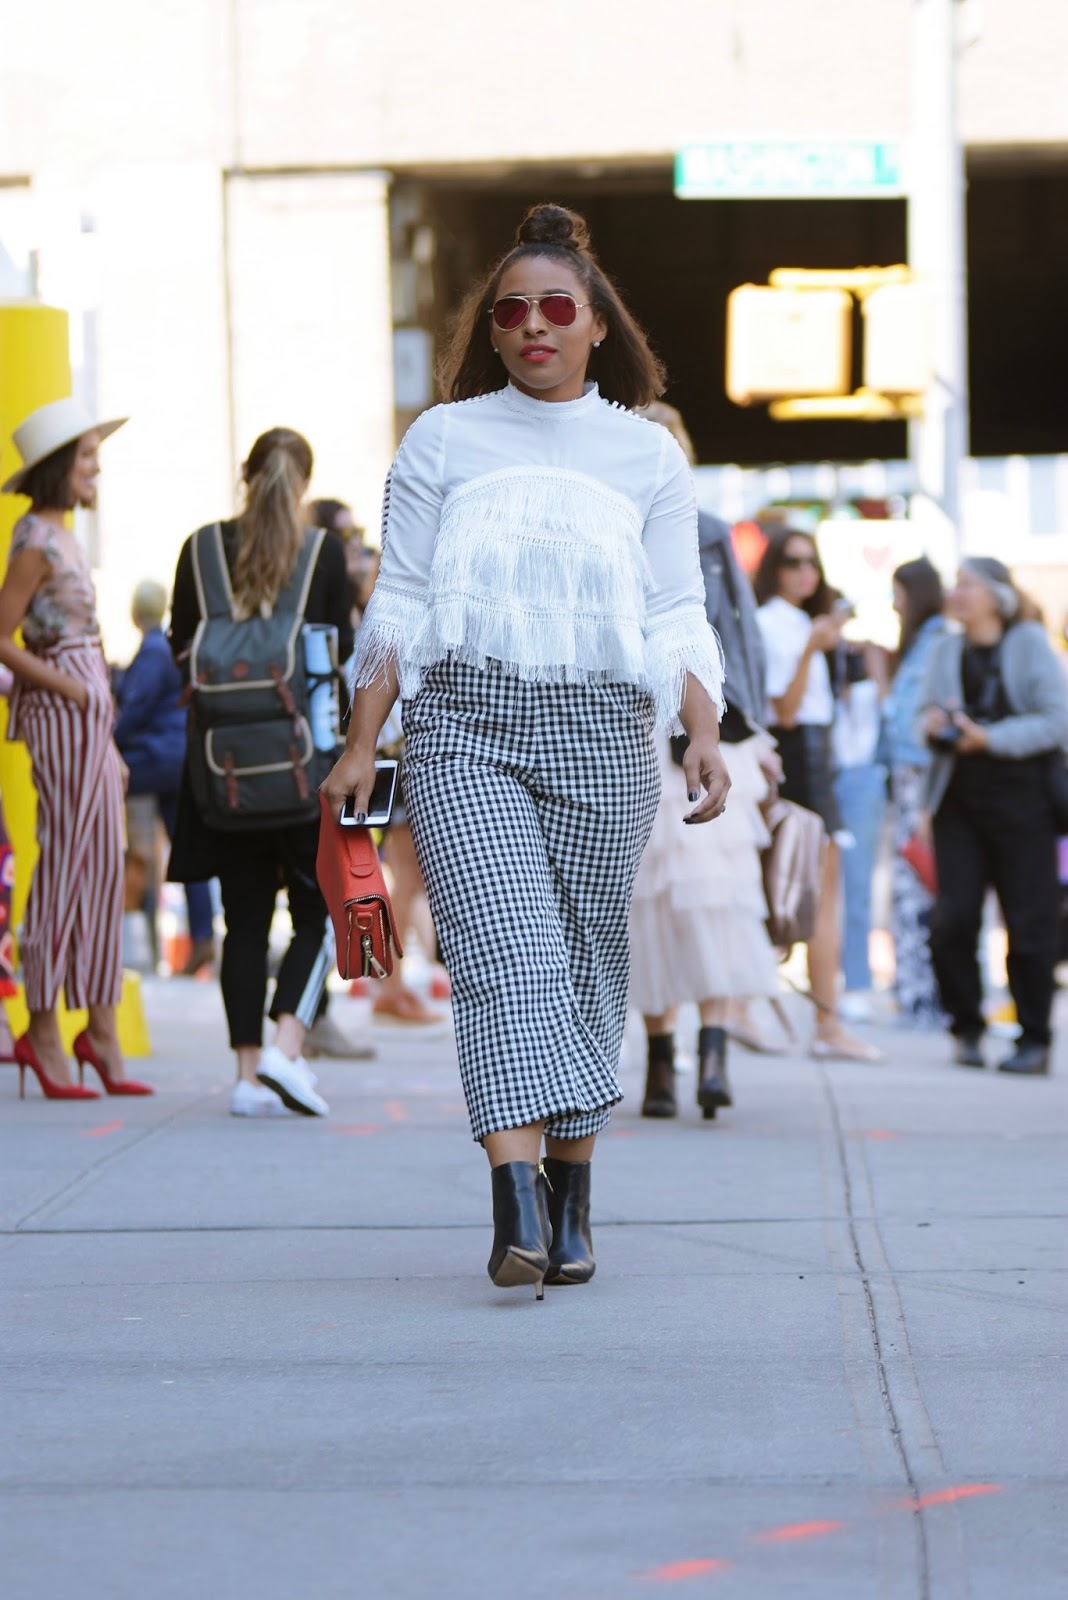 New york fashion week, fashion week, nyfw, nyfw 2017, spring/summer 2018, bloggers, nephew streetstyle